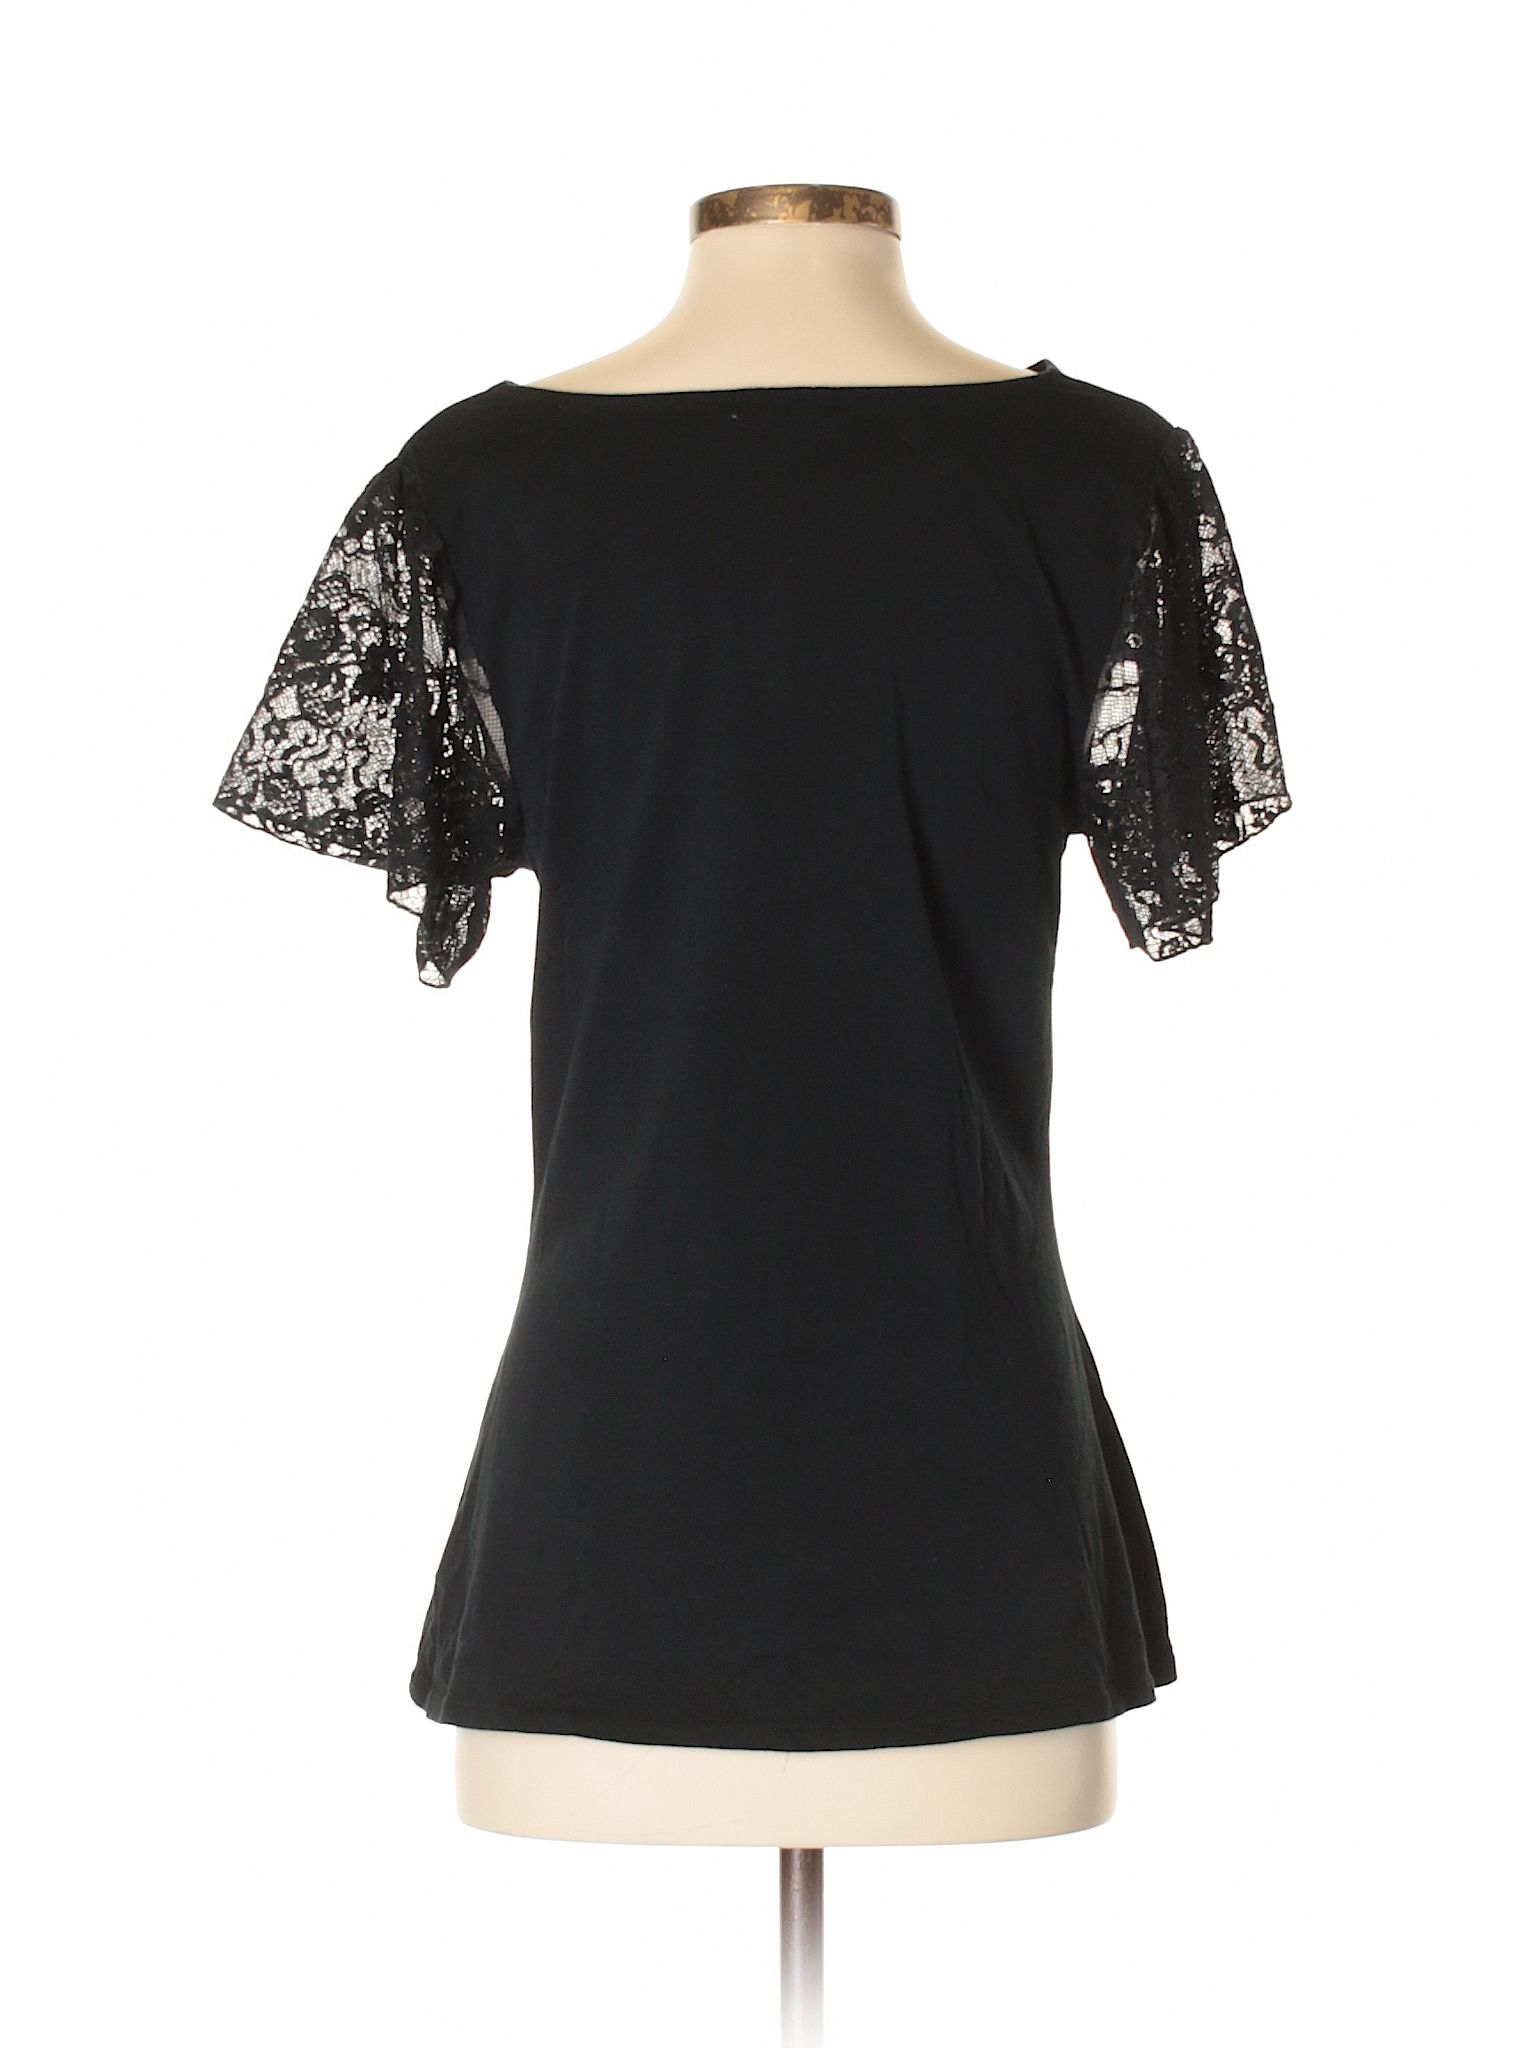 Gap Short Sleeve Top Size 400 Black Womens Tops